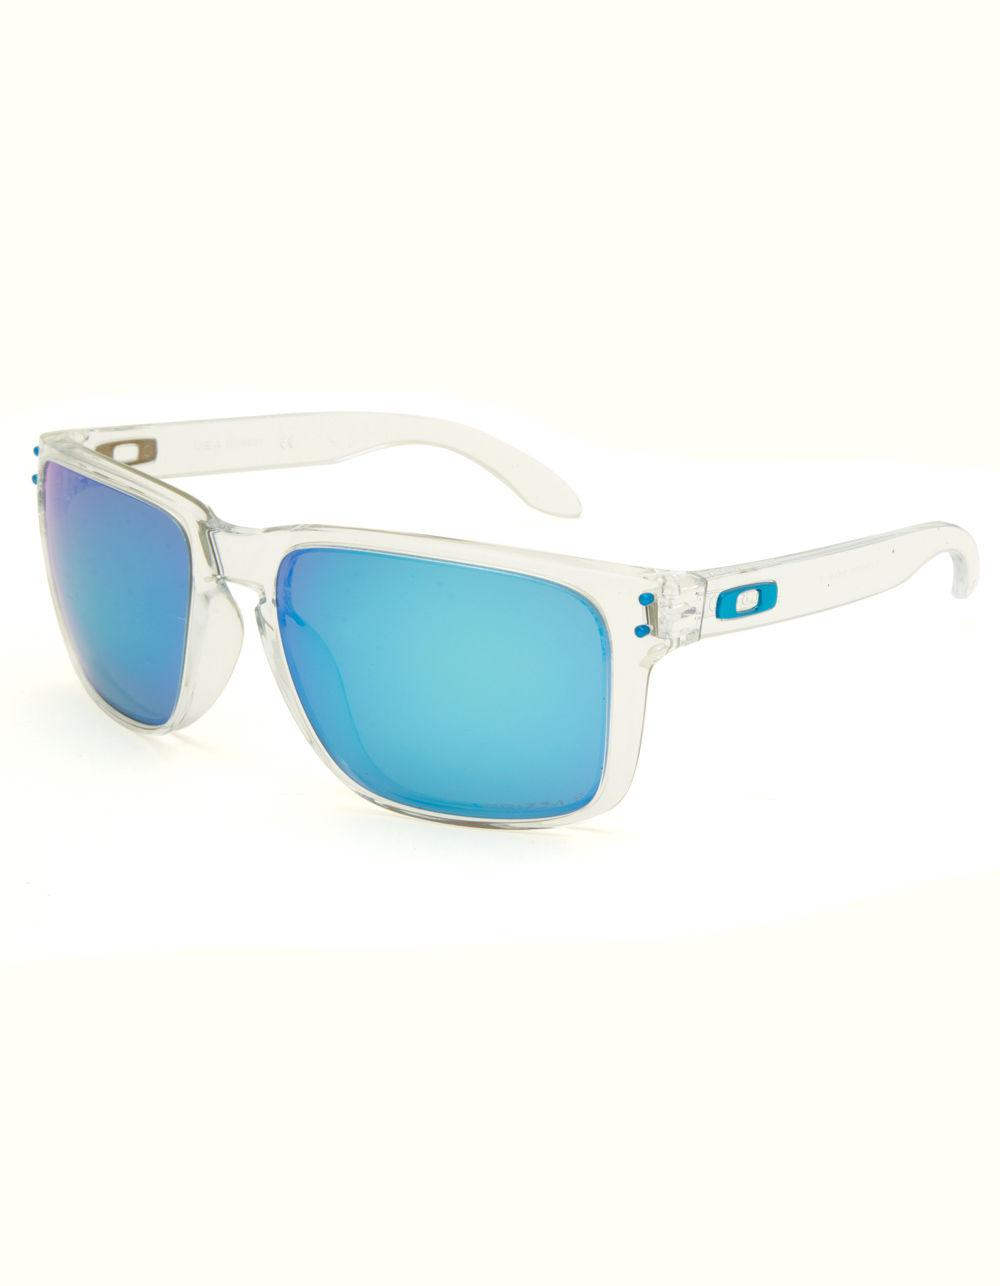 092706f8023 Lyst - Oakley Holbrook Xl Clear   Blue Sunglasses in Blue for Men